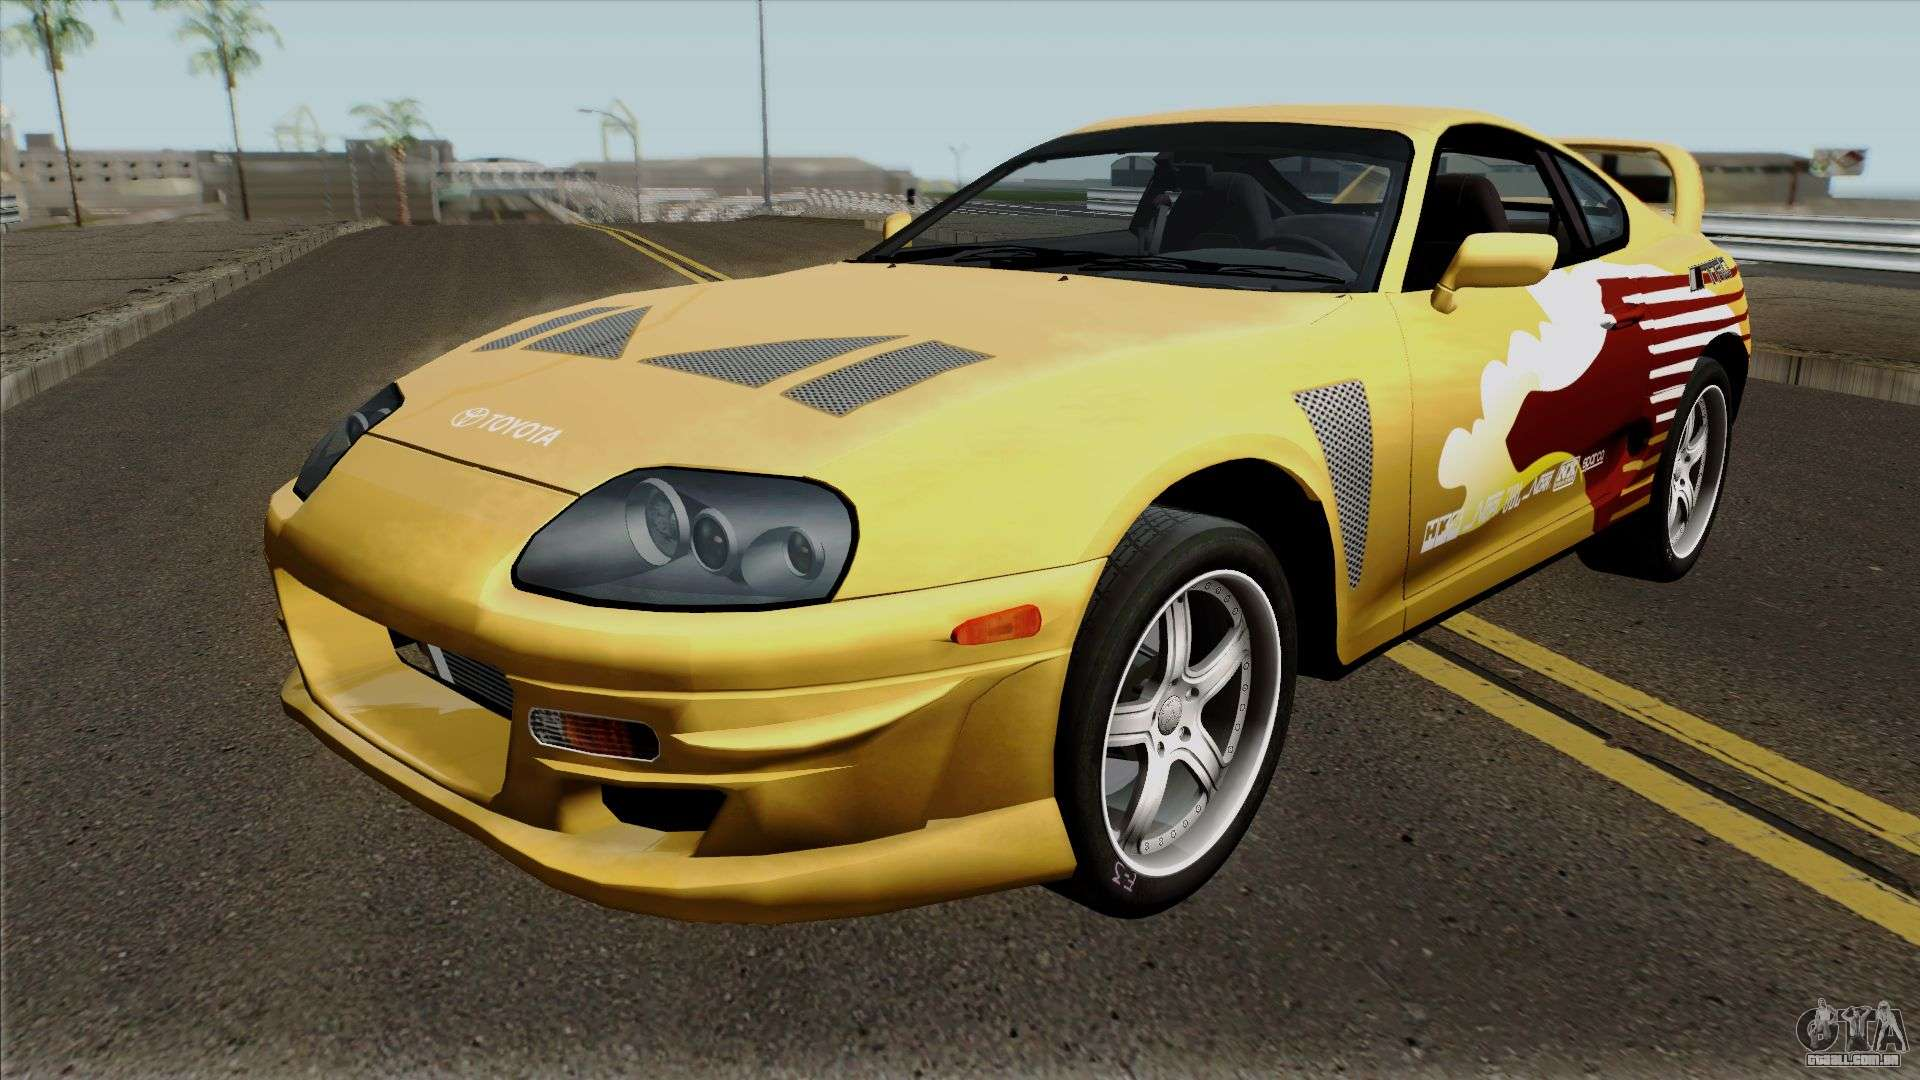 Gta san andreas fast and furious mod pc download